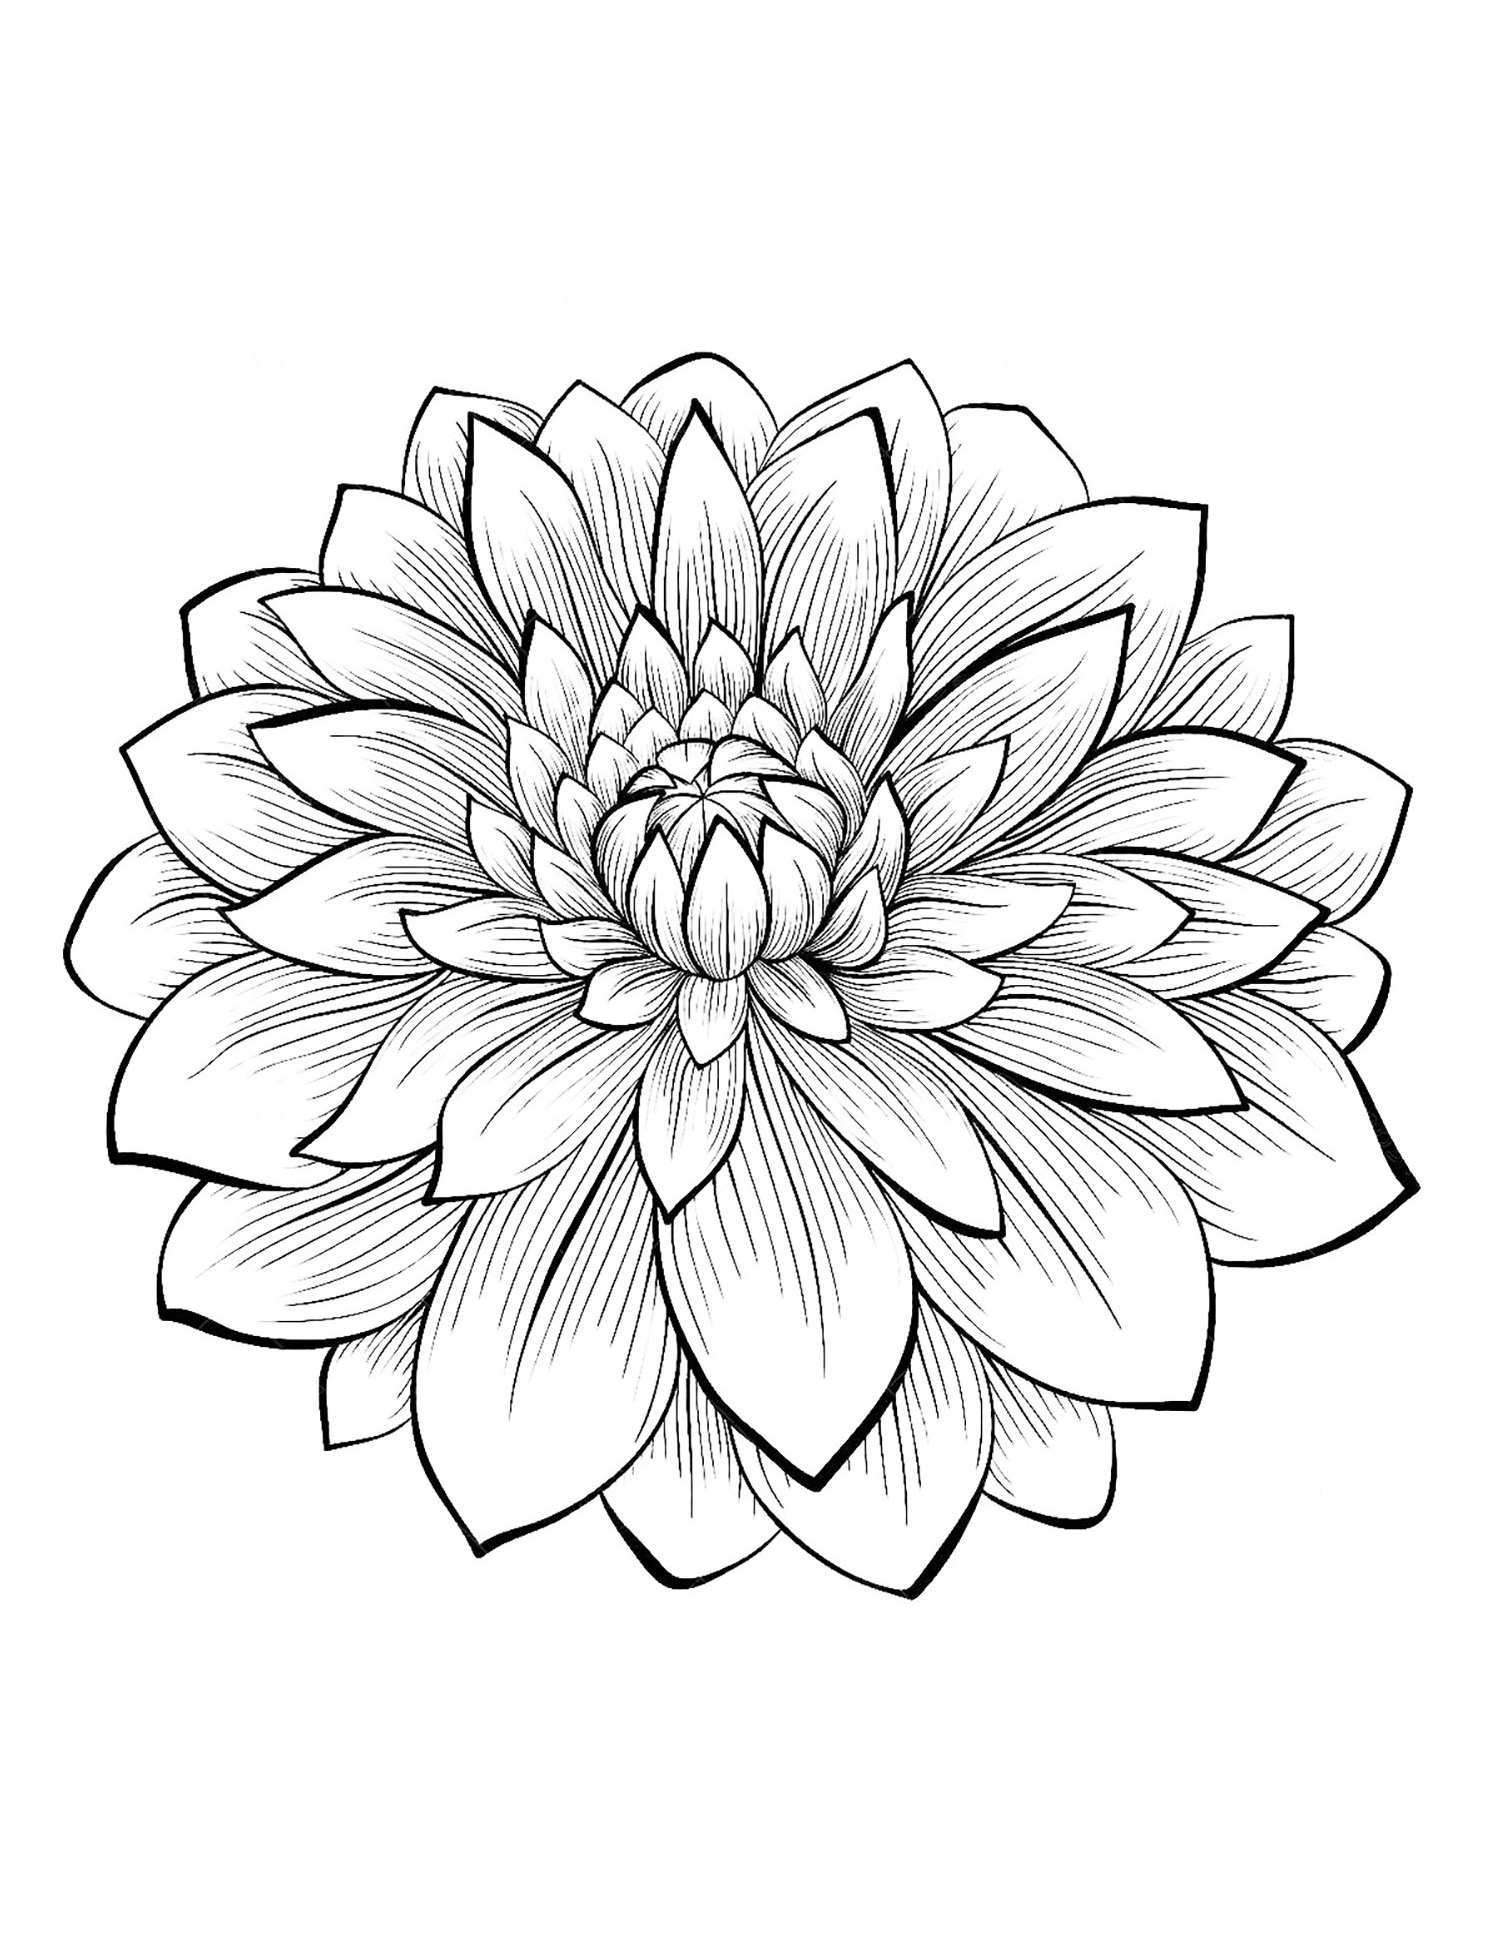 pictures of flowers to color free printables coloring pages flower free printable coloring pages color pictures to flowers free of printables